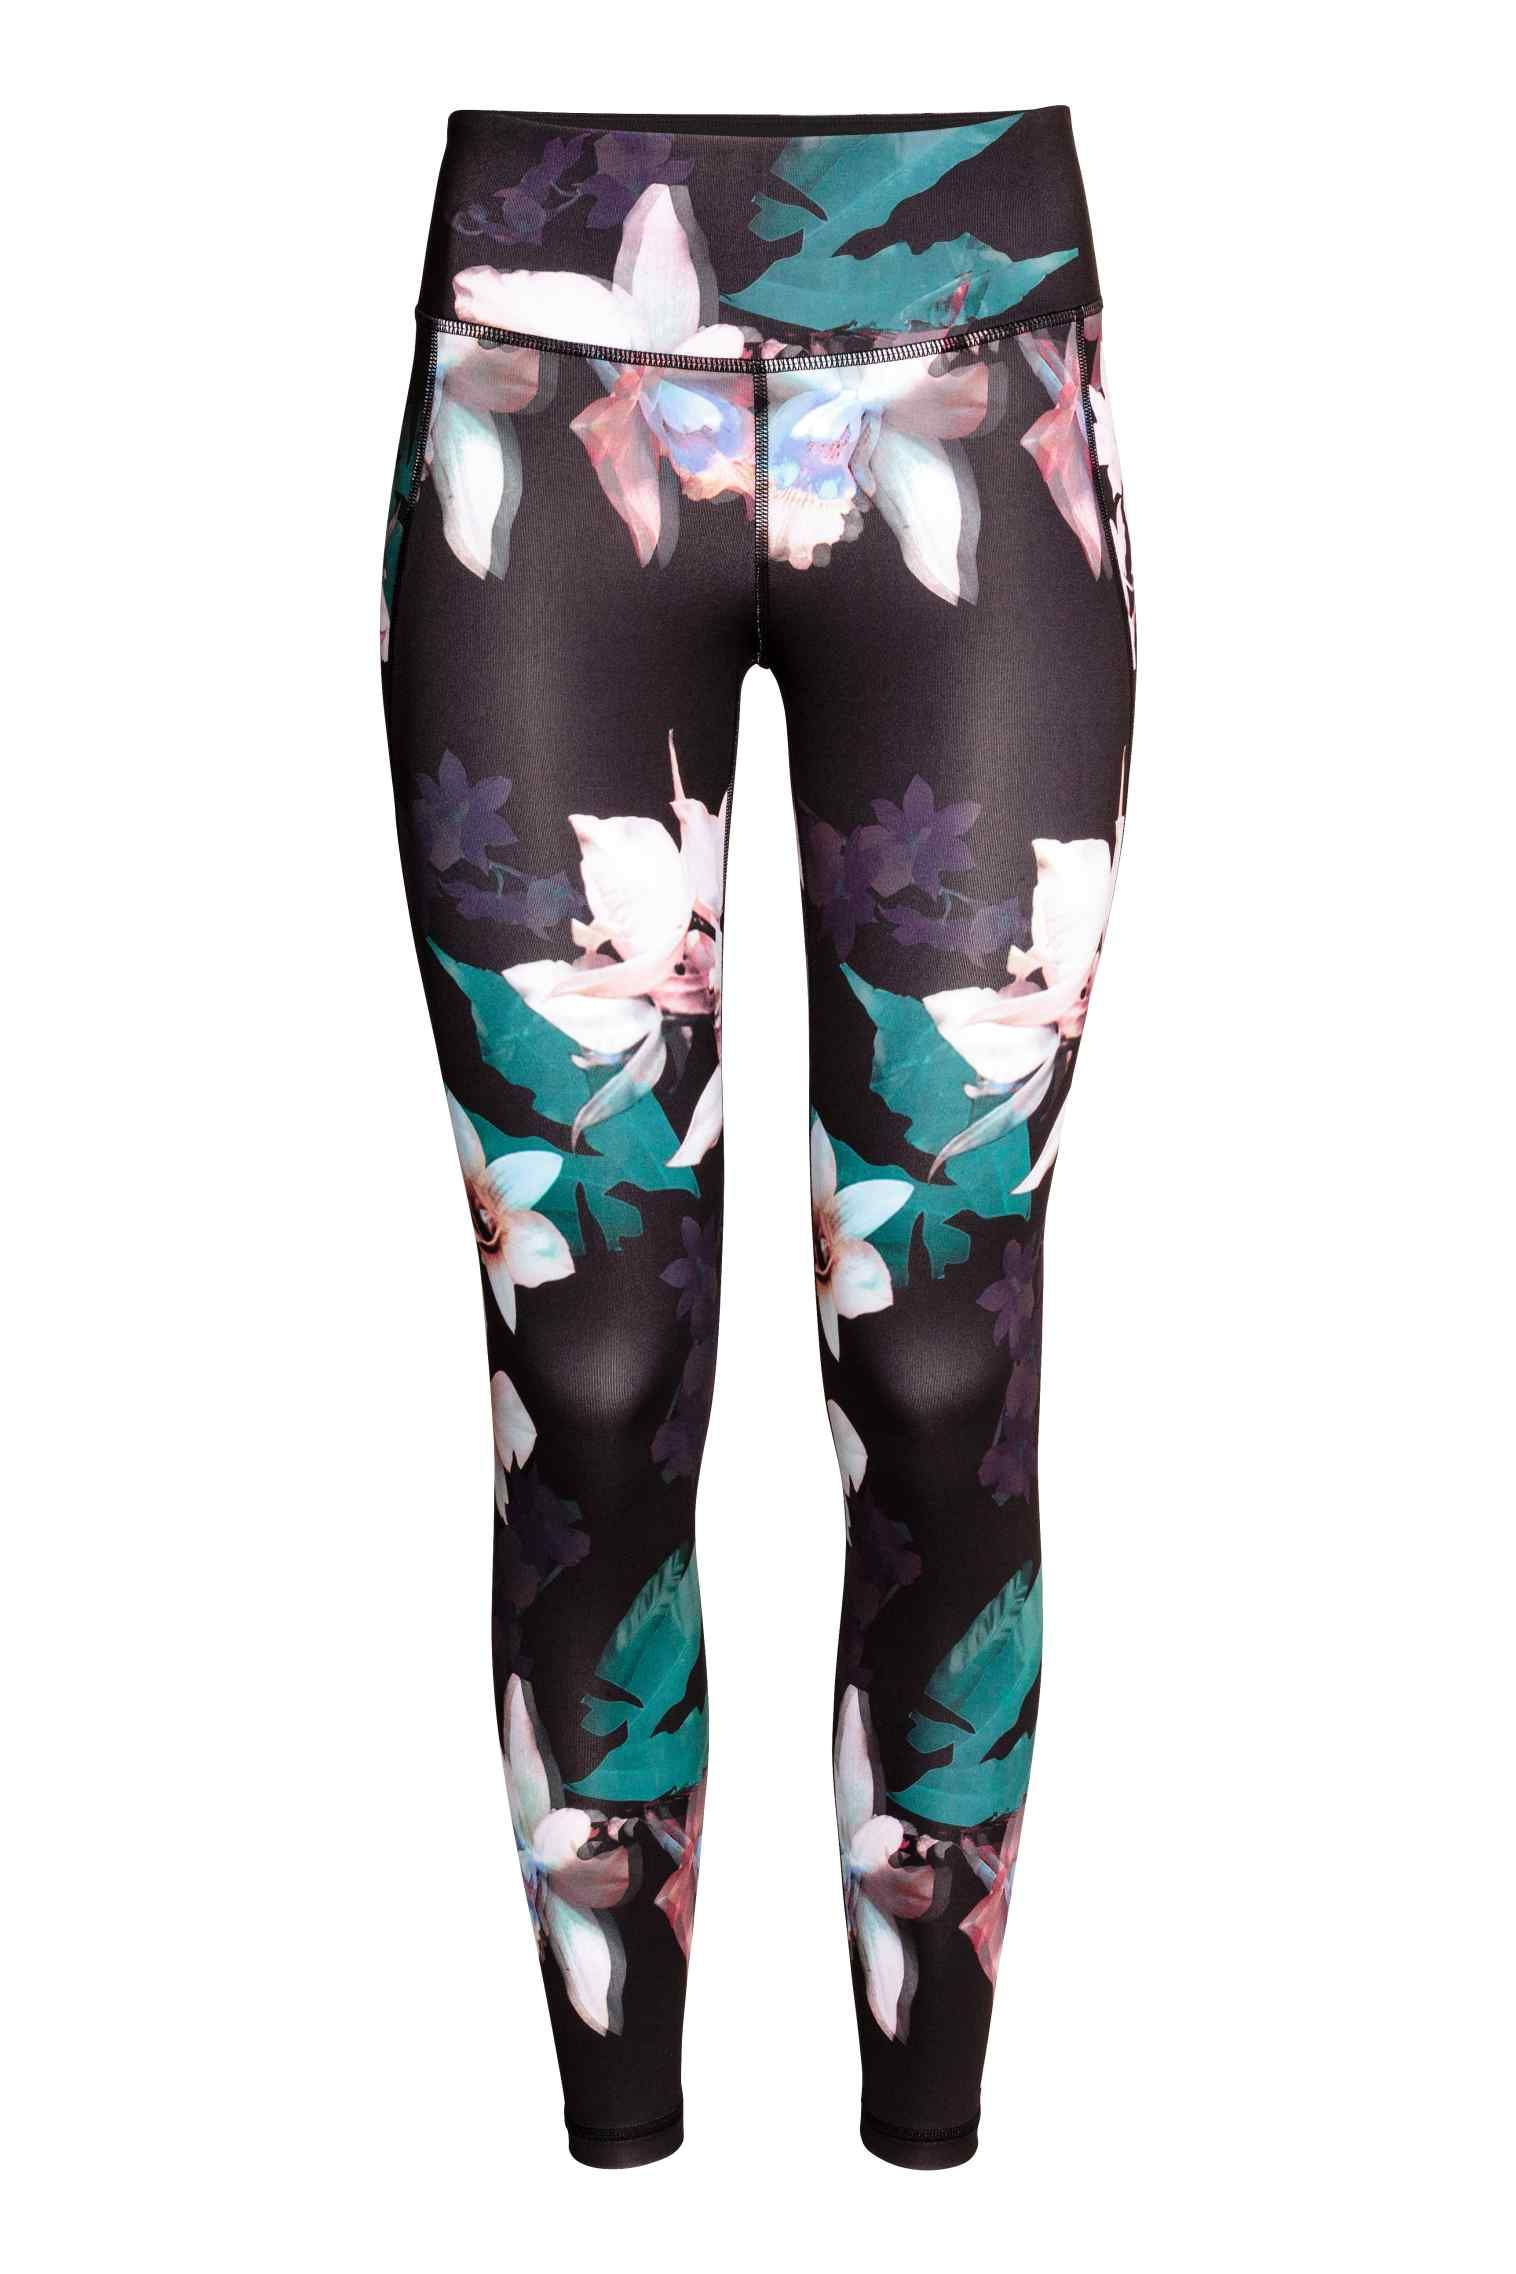 Legginsy Treningowe Czarny Kwiaty Ona H M Pl Athletic Outfits Floral Gym Leggings Sporty Outfits